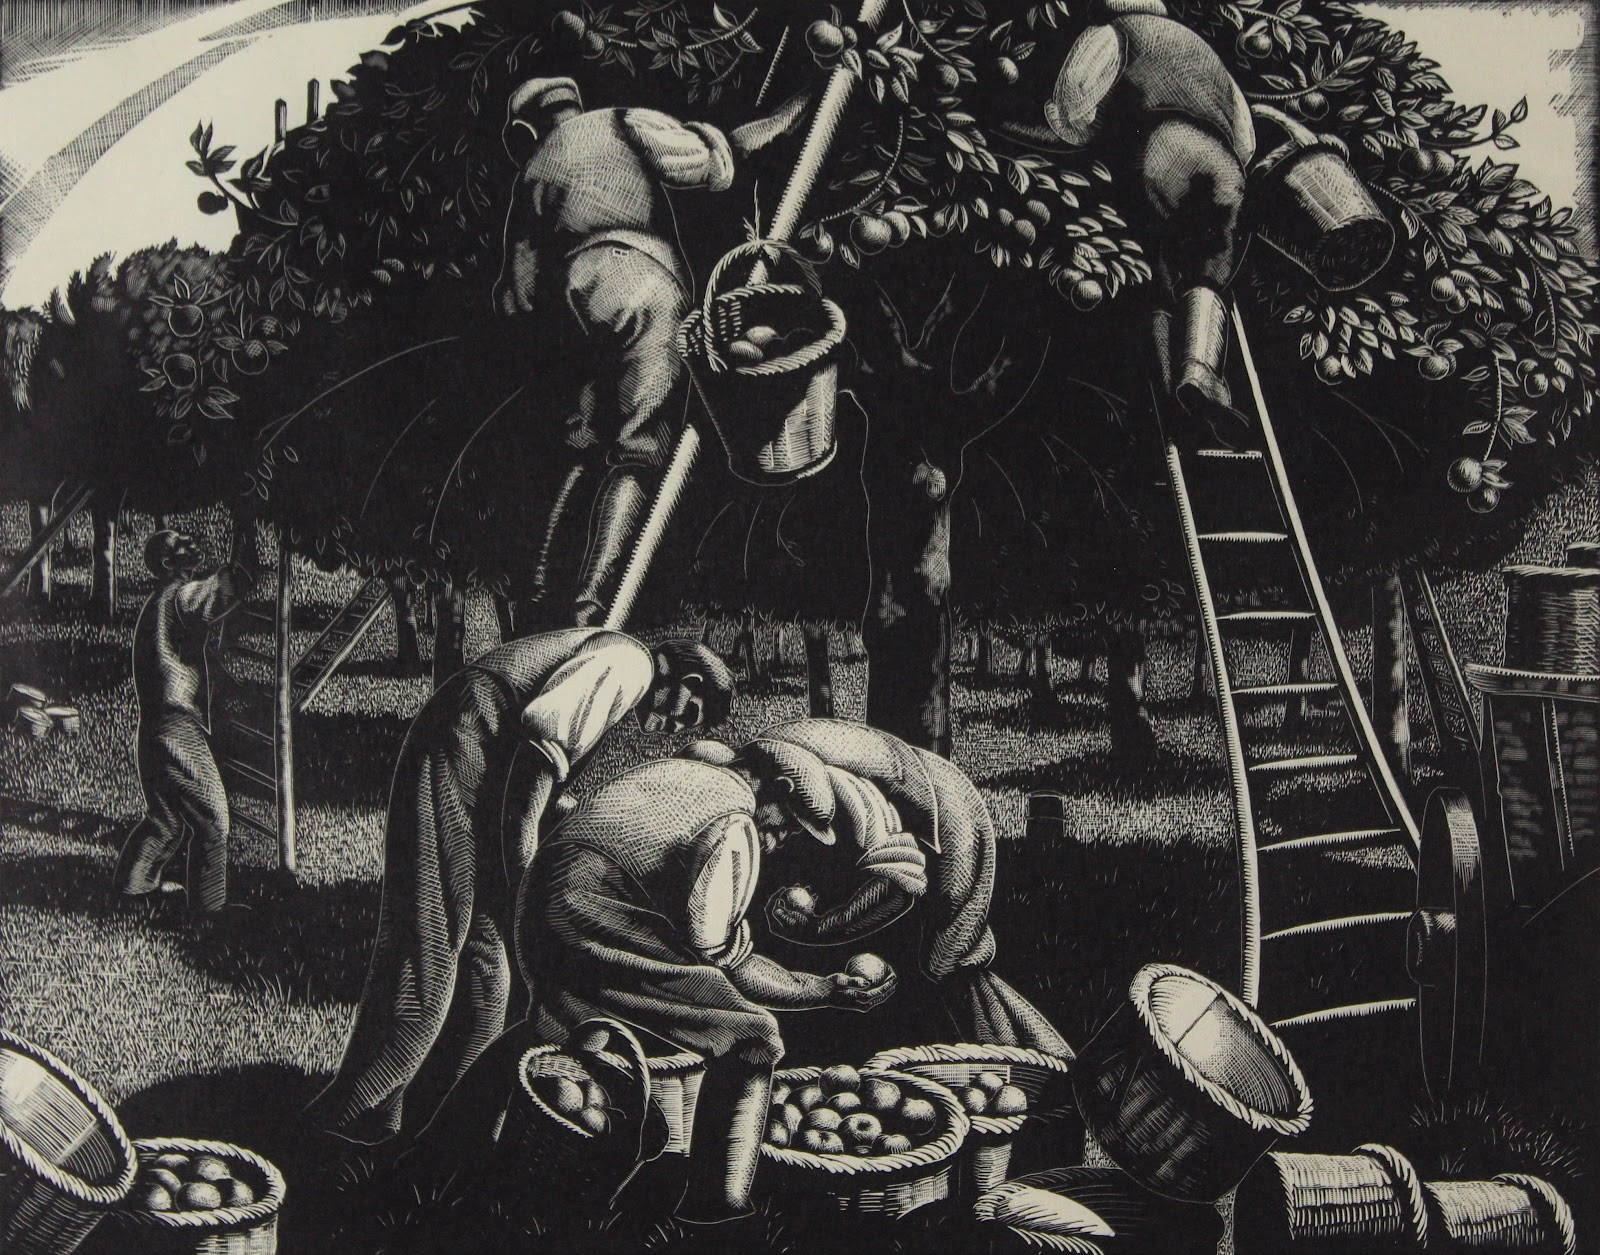 A wood engraving on paper of men picking apples. Two stand on their own ladders, picking apples off the tree. In the foreground, men are piling the apples into larger baskets, while other baskets lay empty to the side. The grove of trees extend into the distance under a light sky.